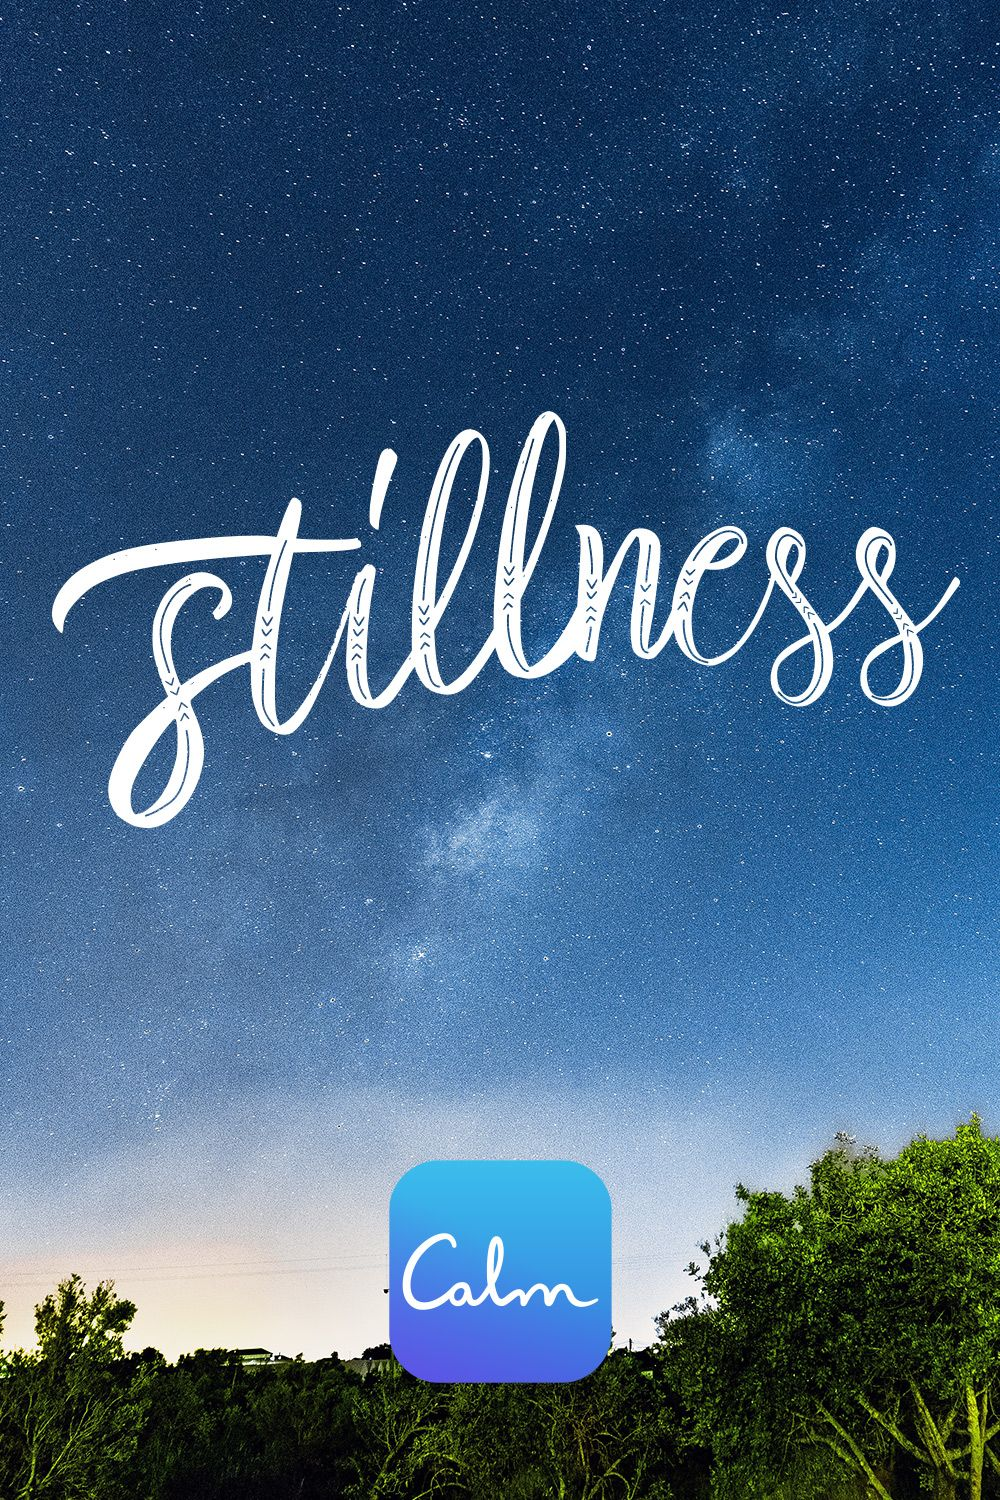 STILLNESS Calm app, Quiet confidence, Feeling stuck